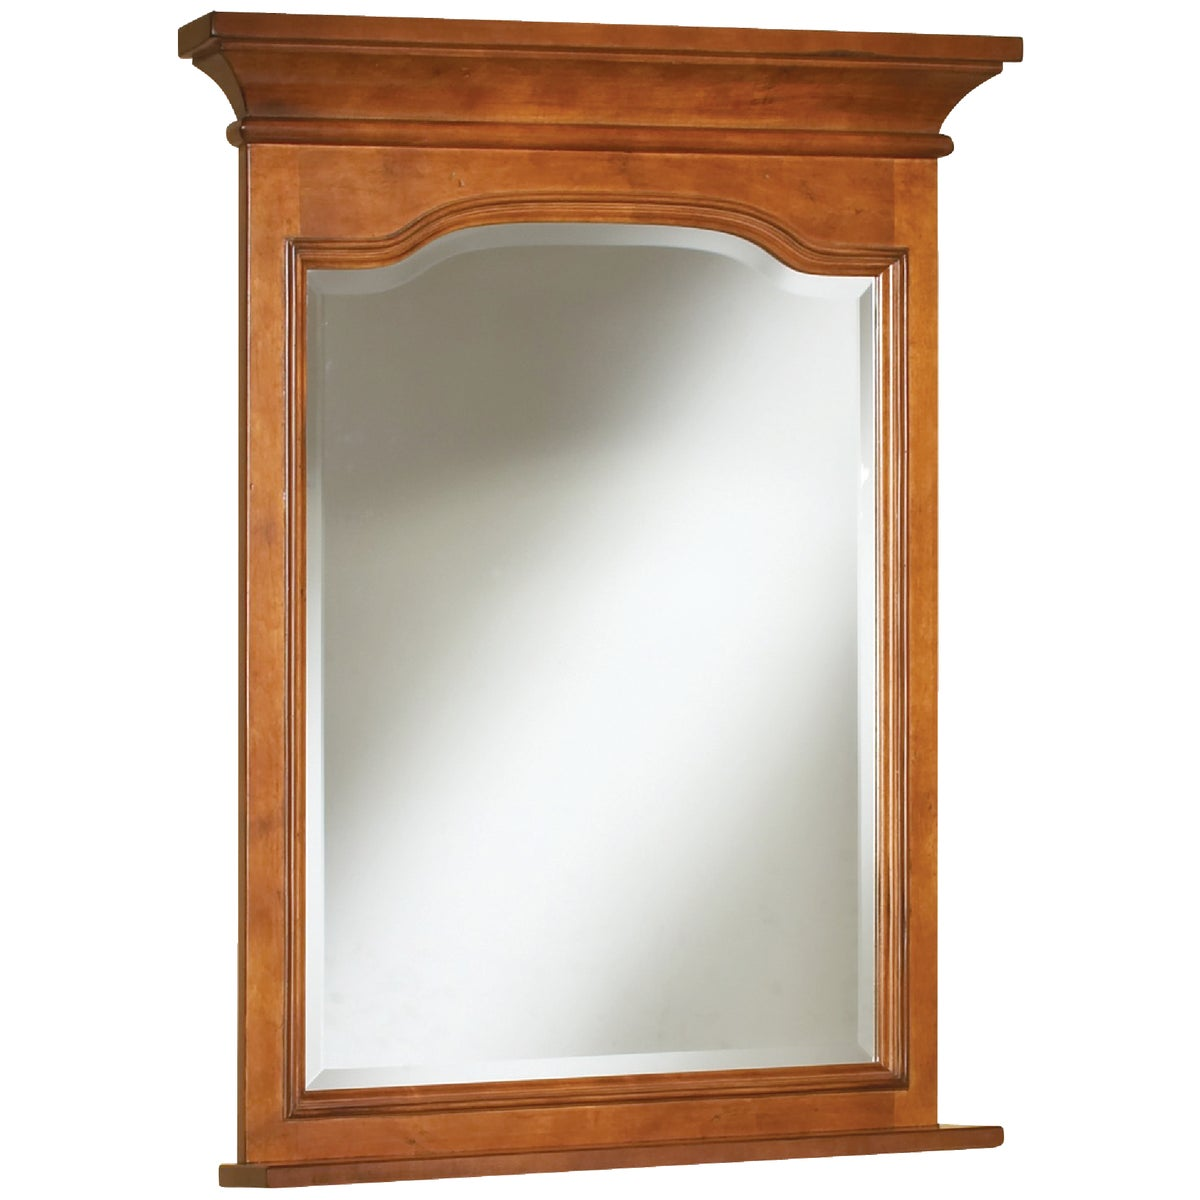 30X38 CAMBRIAN MIRROR - CB3038MR by Sunnywood Products